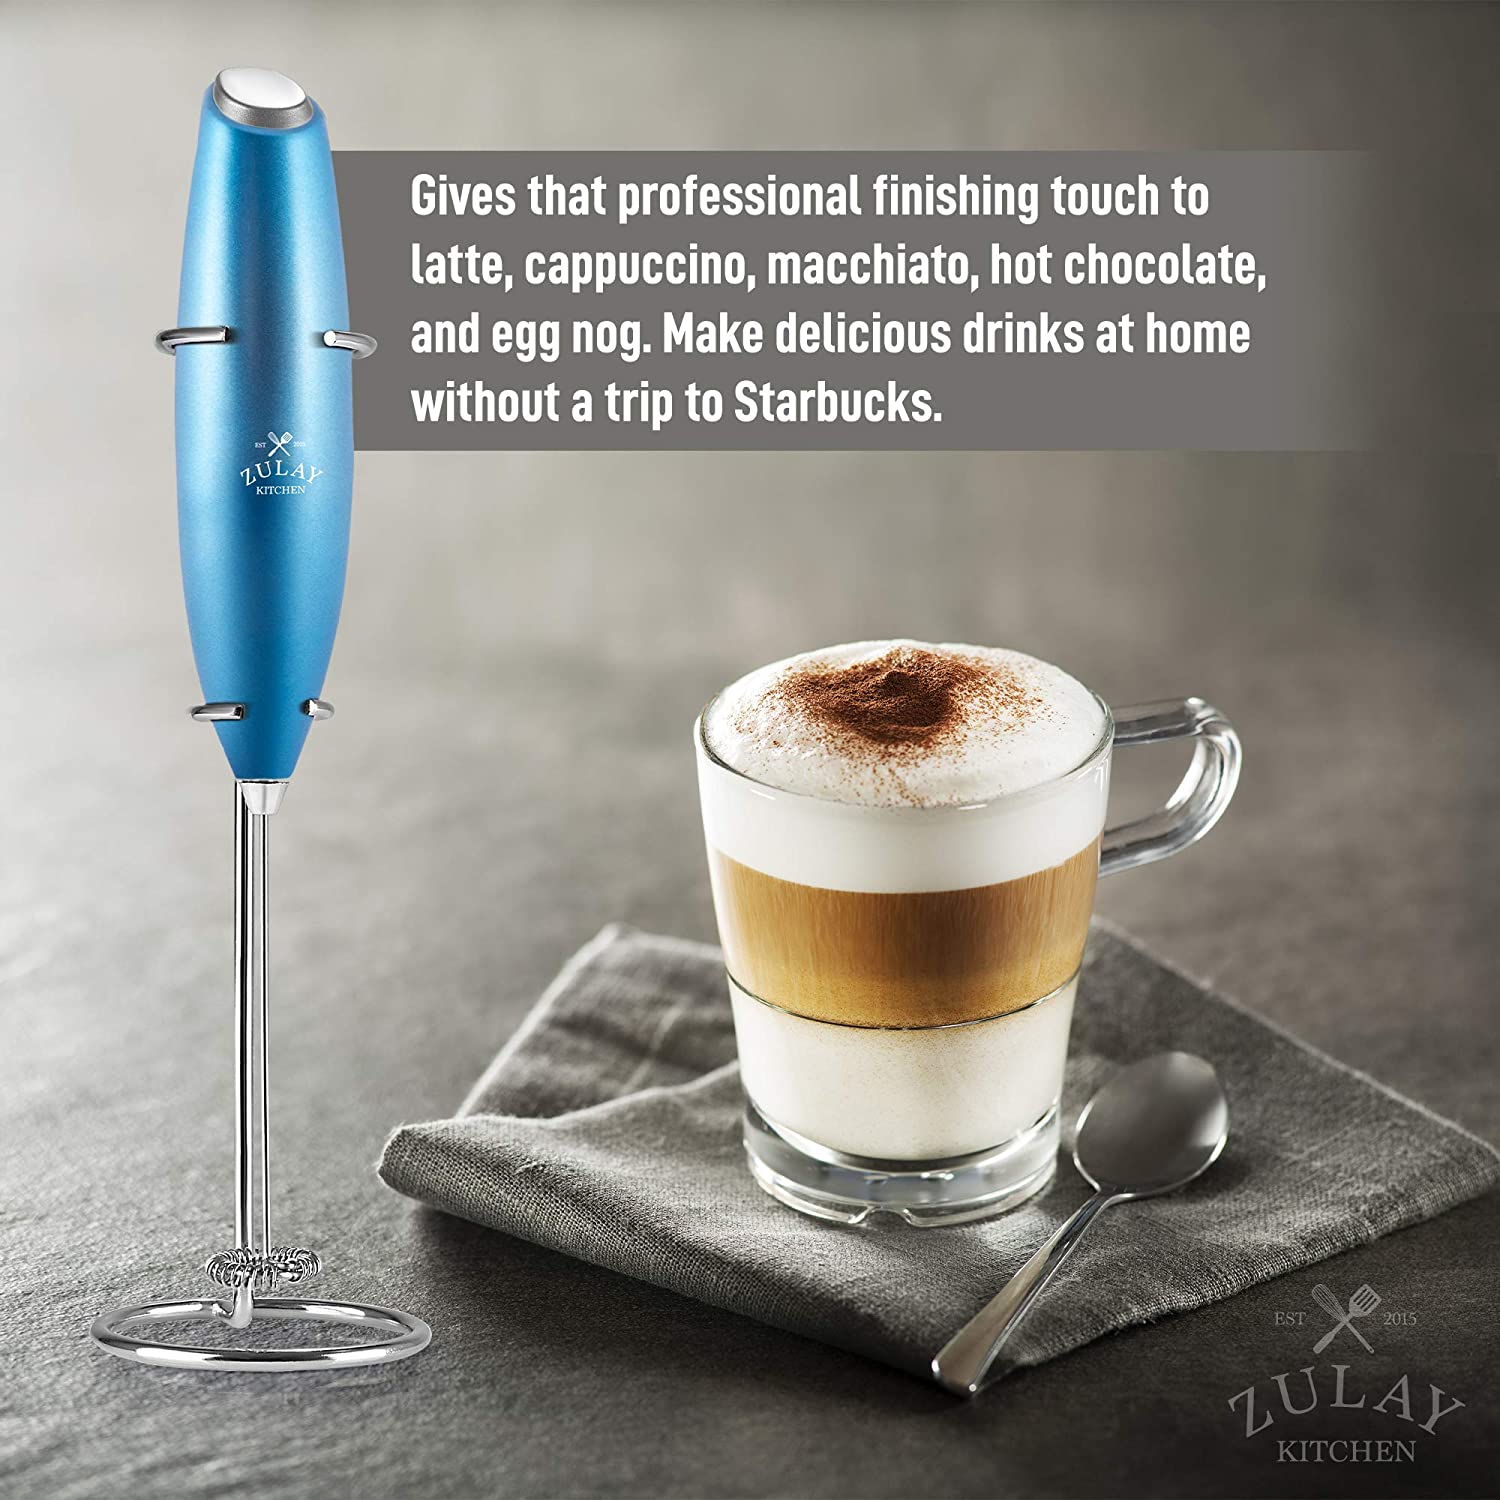 Zulay Original Milk Frother Handheld Foam Maker for Lattes - Whisk Drink Mixer for Bulletproof Coffee, Mini Foamer for Cappuccino, Frappe, Matcha, Hot Chocolate by Milk Boss (Metallic Blue)